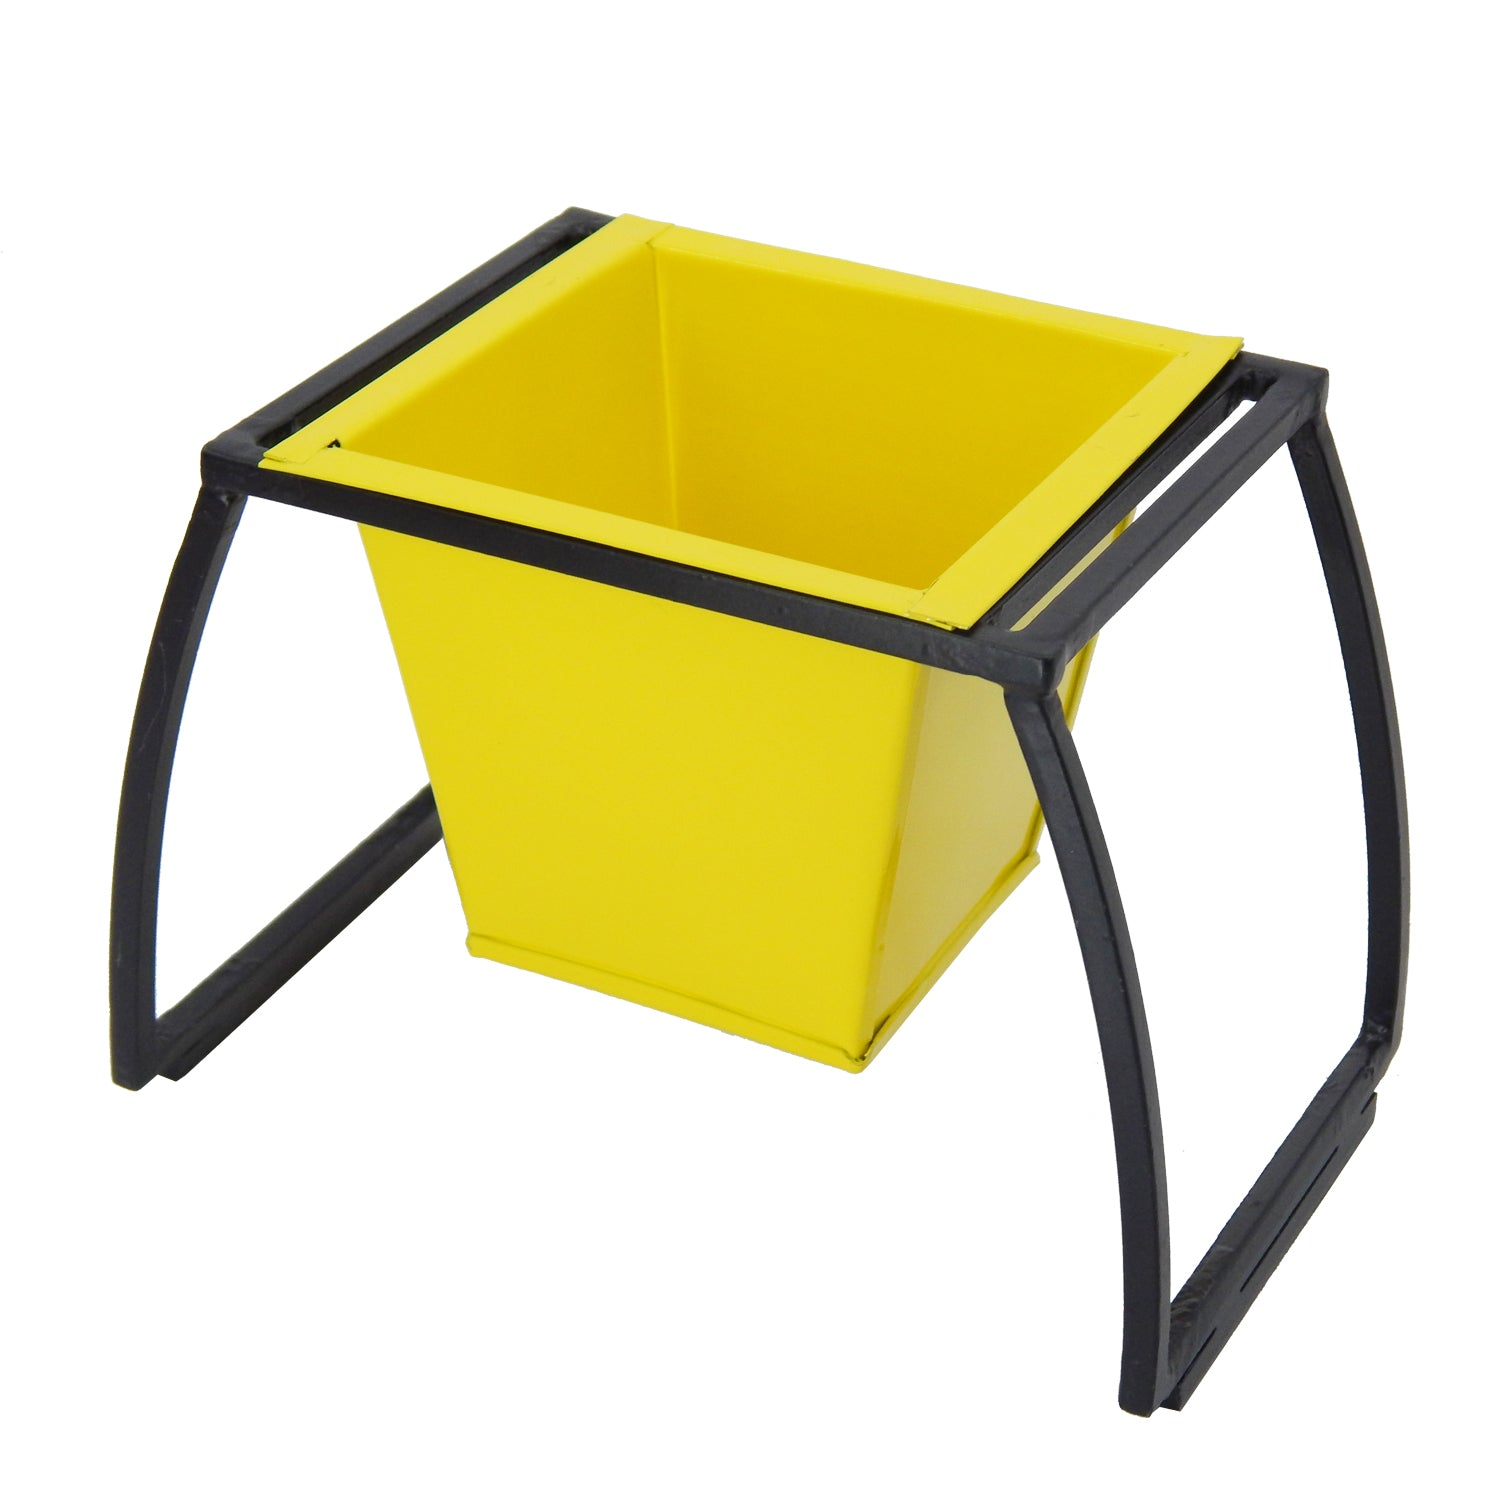 ecofynd Stackable Table Top Planter Pot with Metal Stand, Yellow